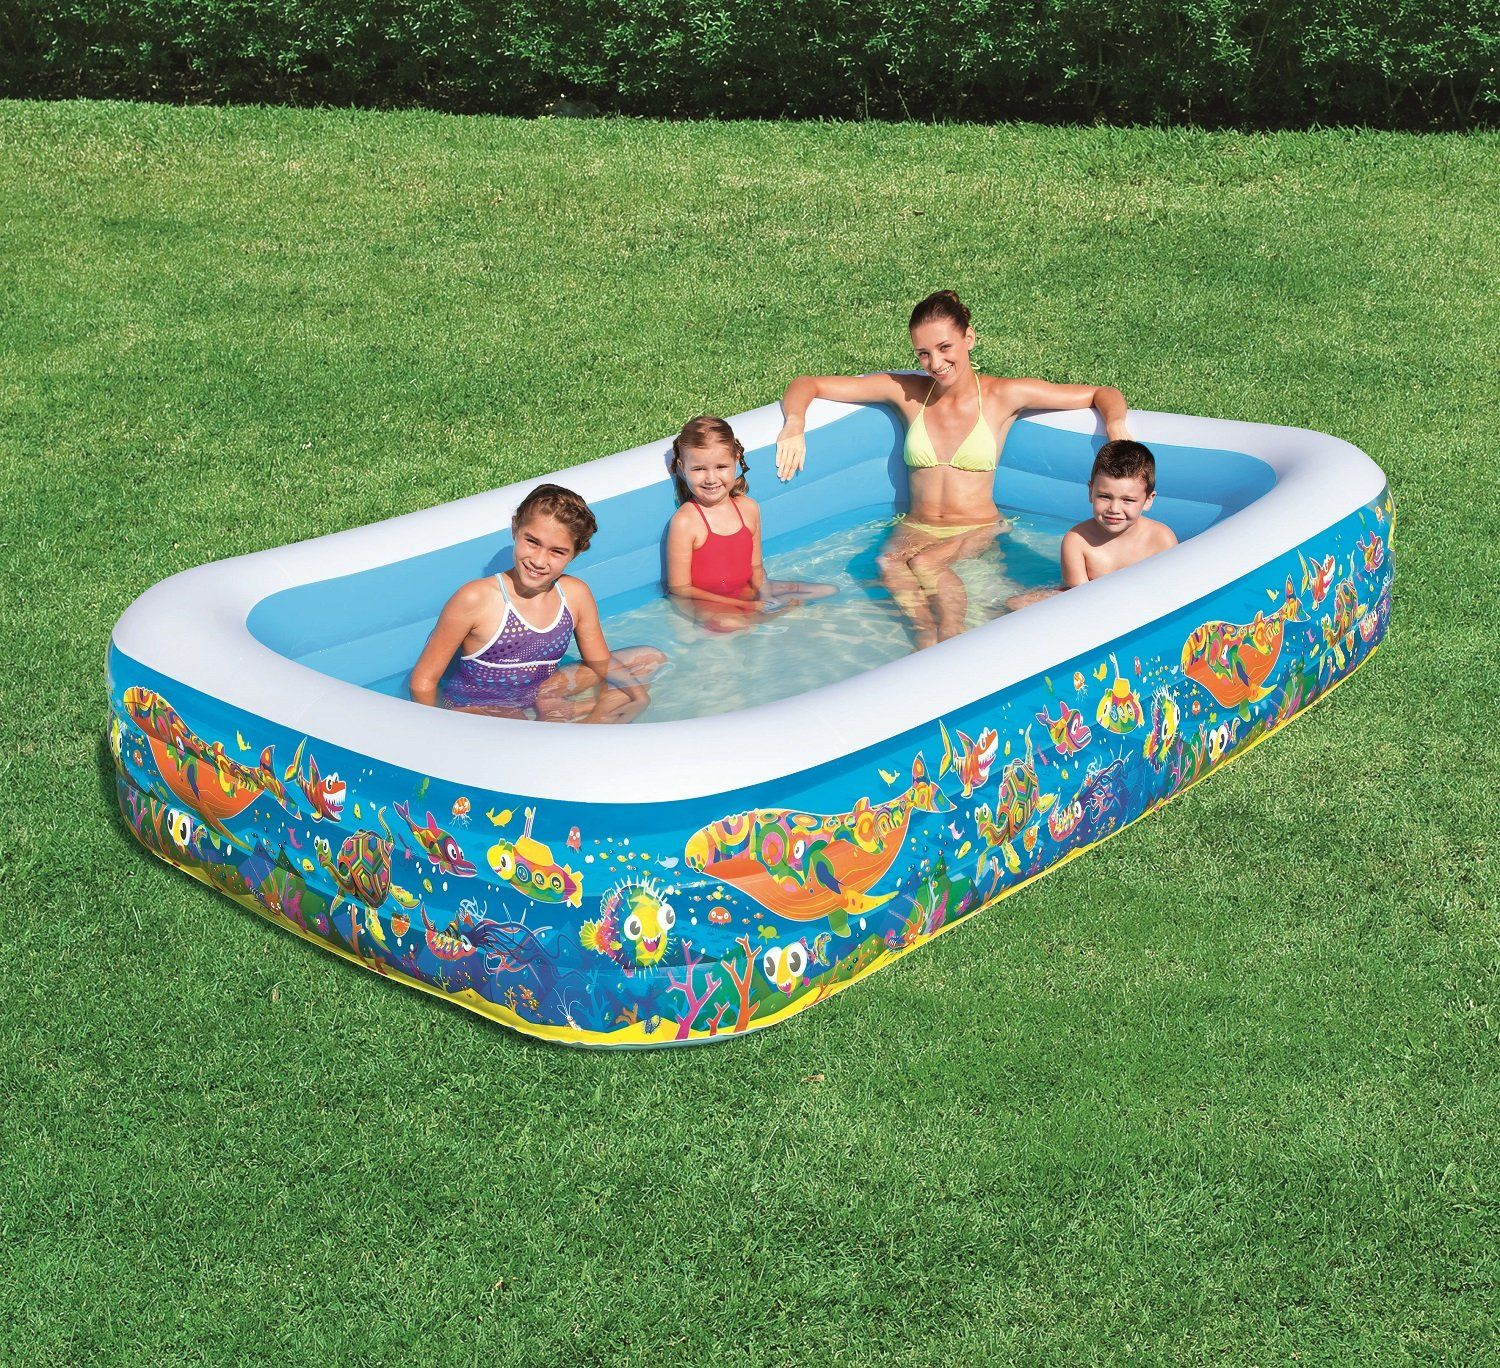 H2ogo Inflatable Family Play Pool Click Image For More